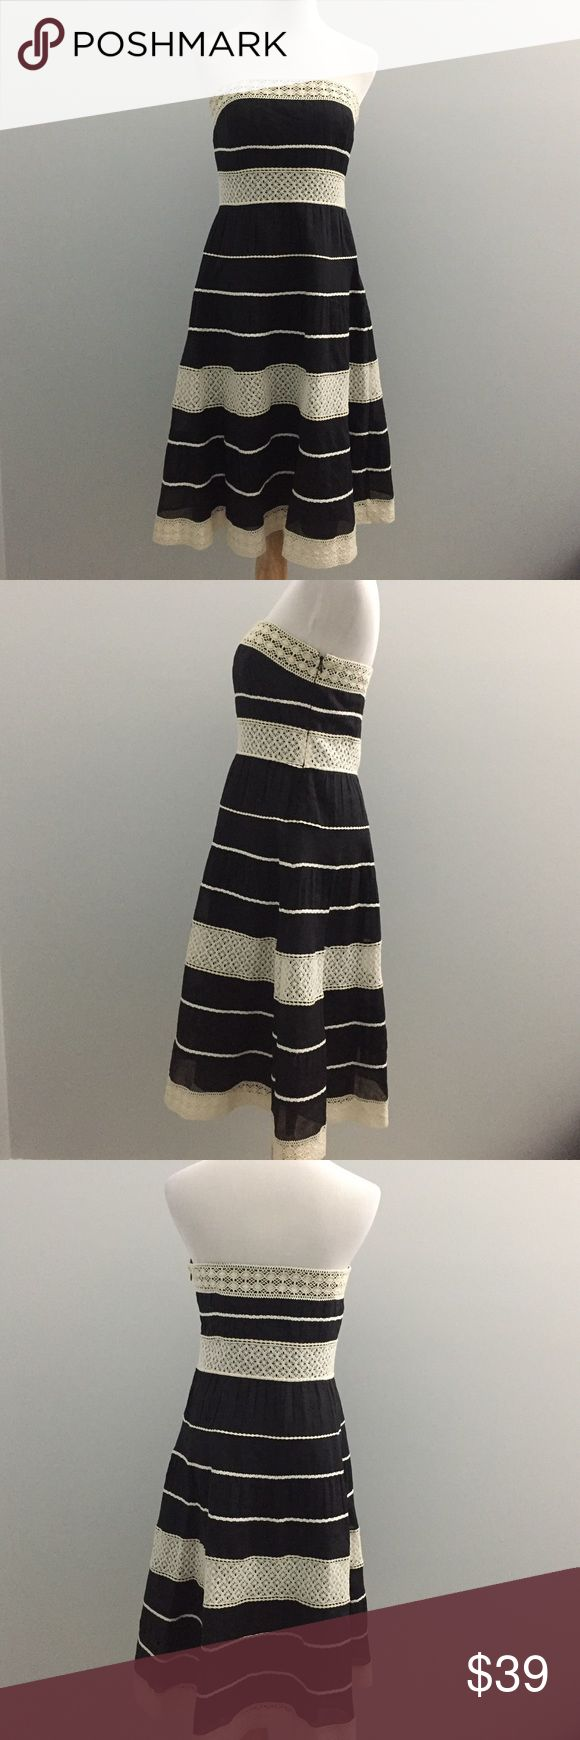 "Ann Taylor Dress 6P Sleeveless petite pleated crochet trim dress in great condition. Great condition. Genty loved  Approximate measurements: Total length: 34.5"" Bust: 15.5"" Ann Taylor Dresses Midi"